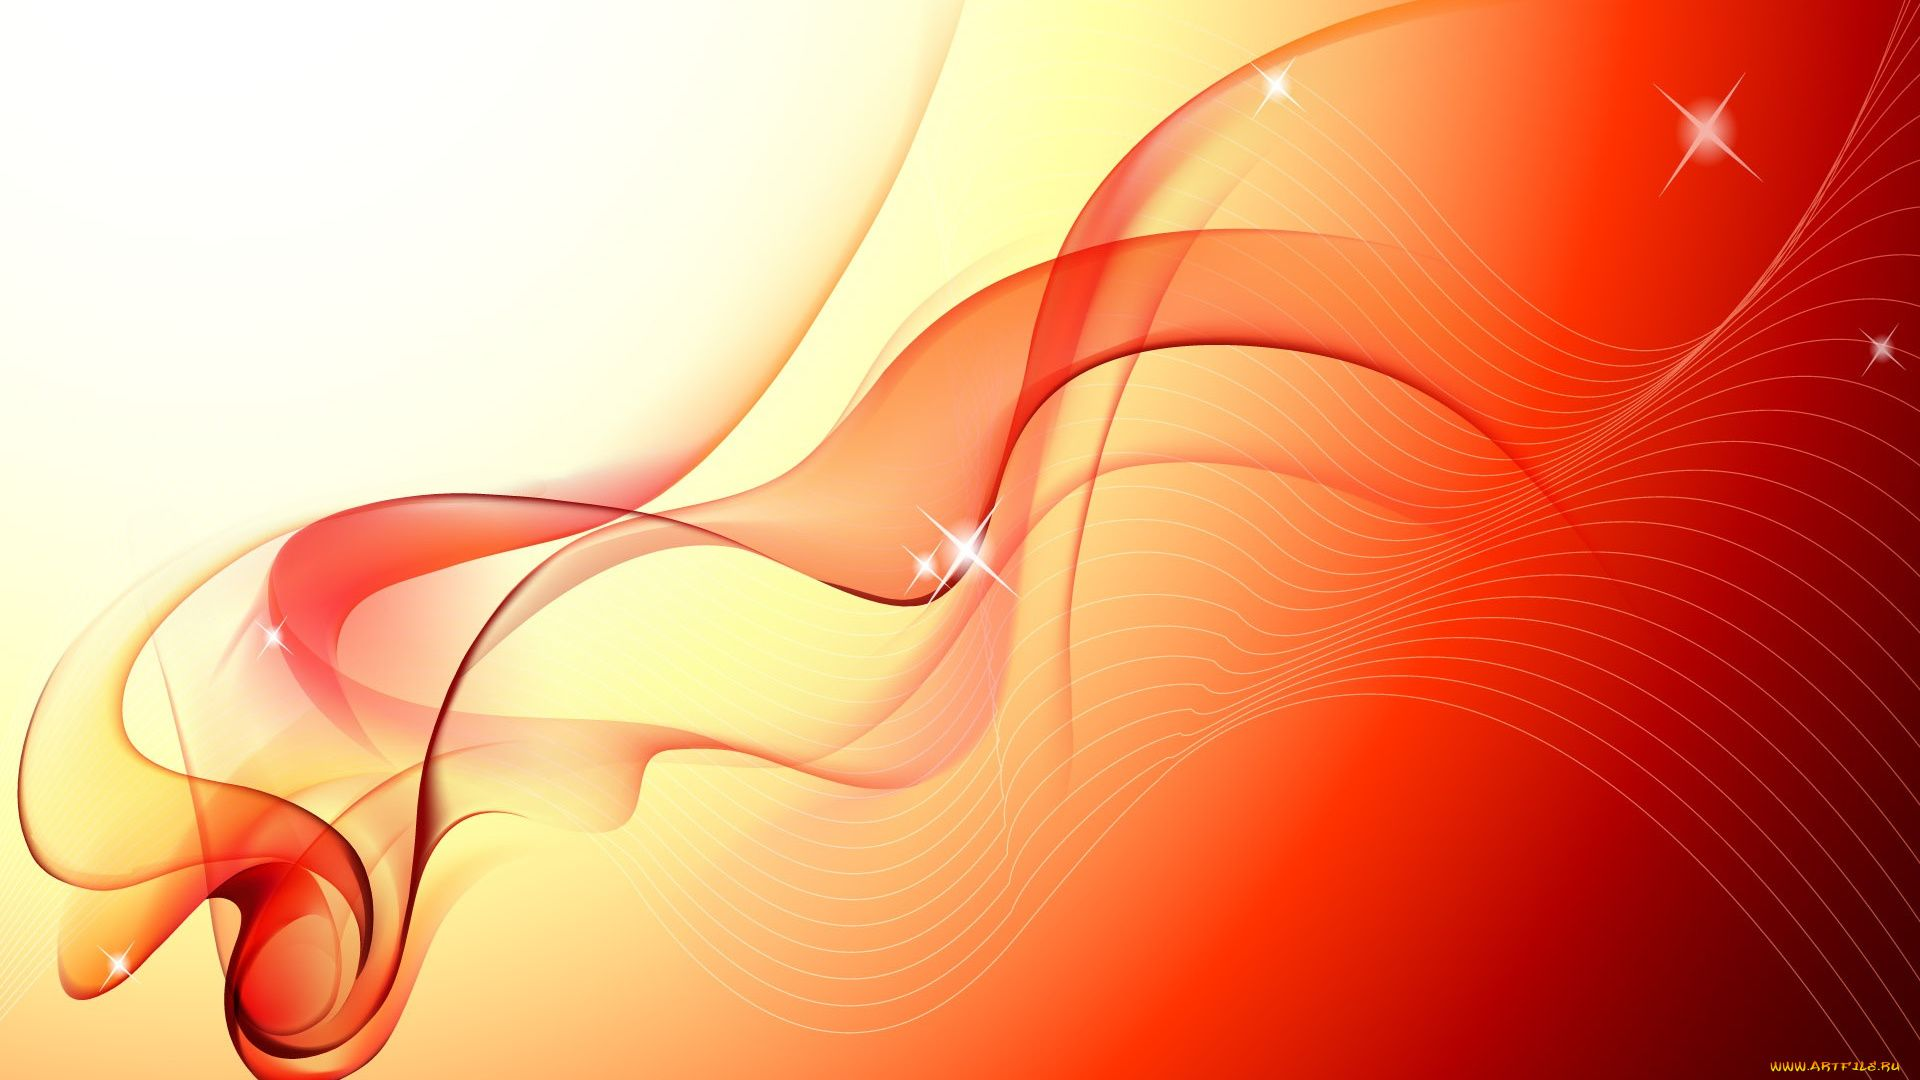 Orange And White download free wallpapers for pc in hd